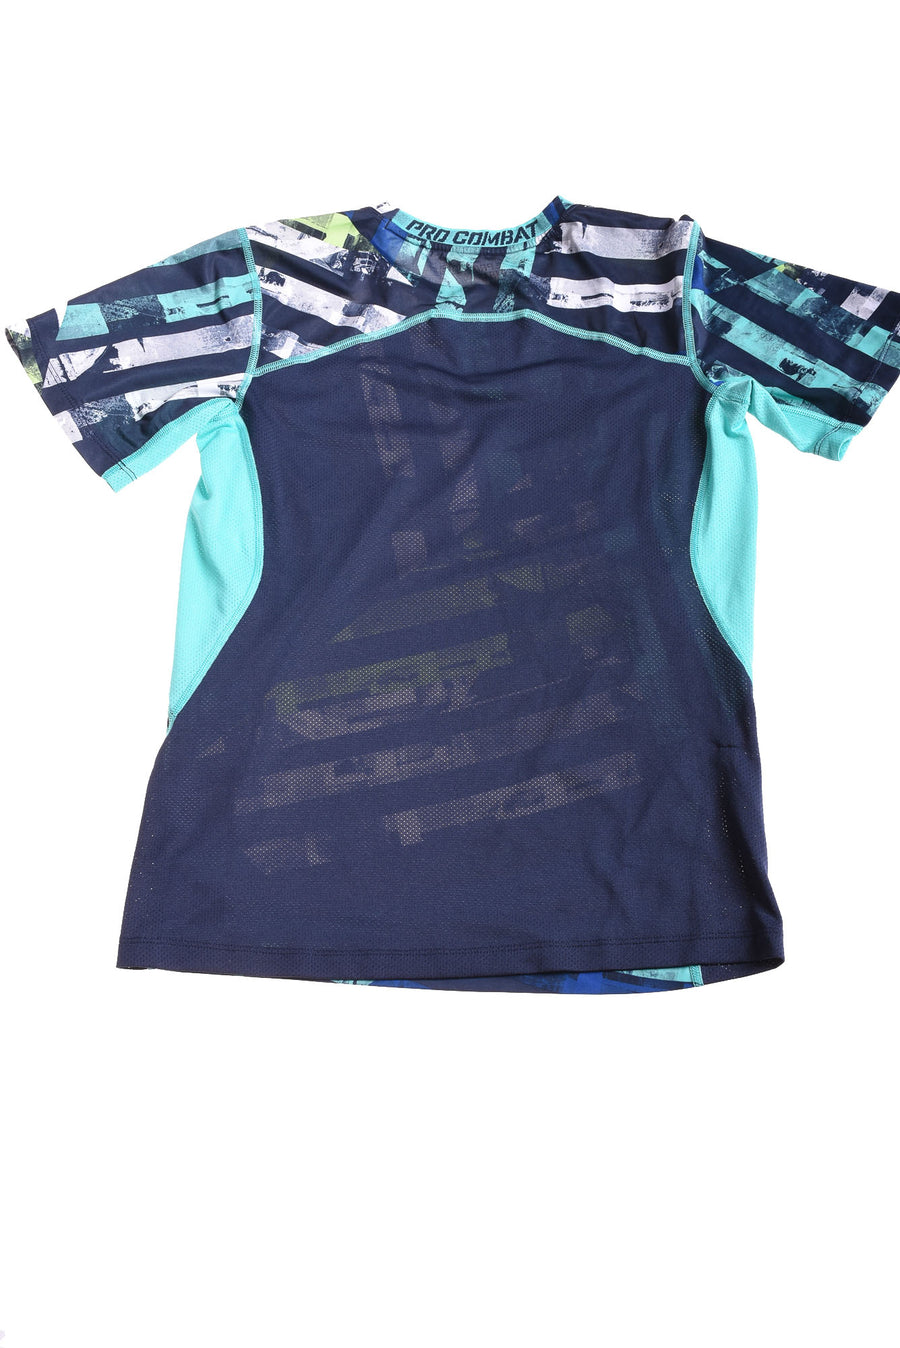 USED Nike Boy's Shirt Large Blue & White